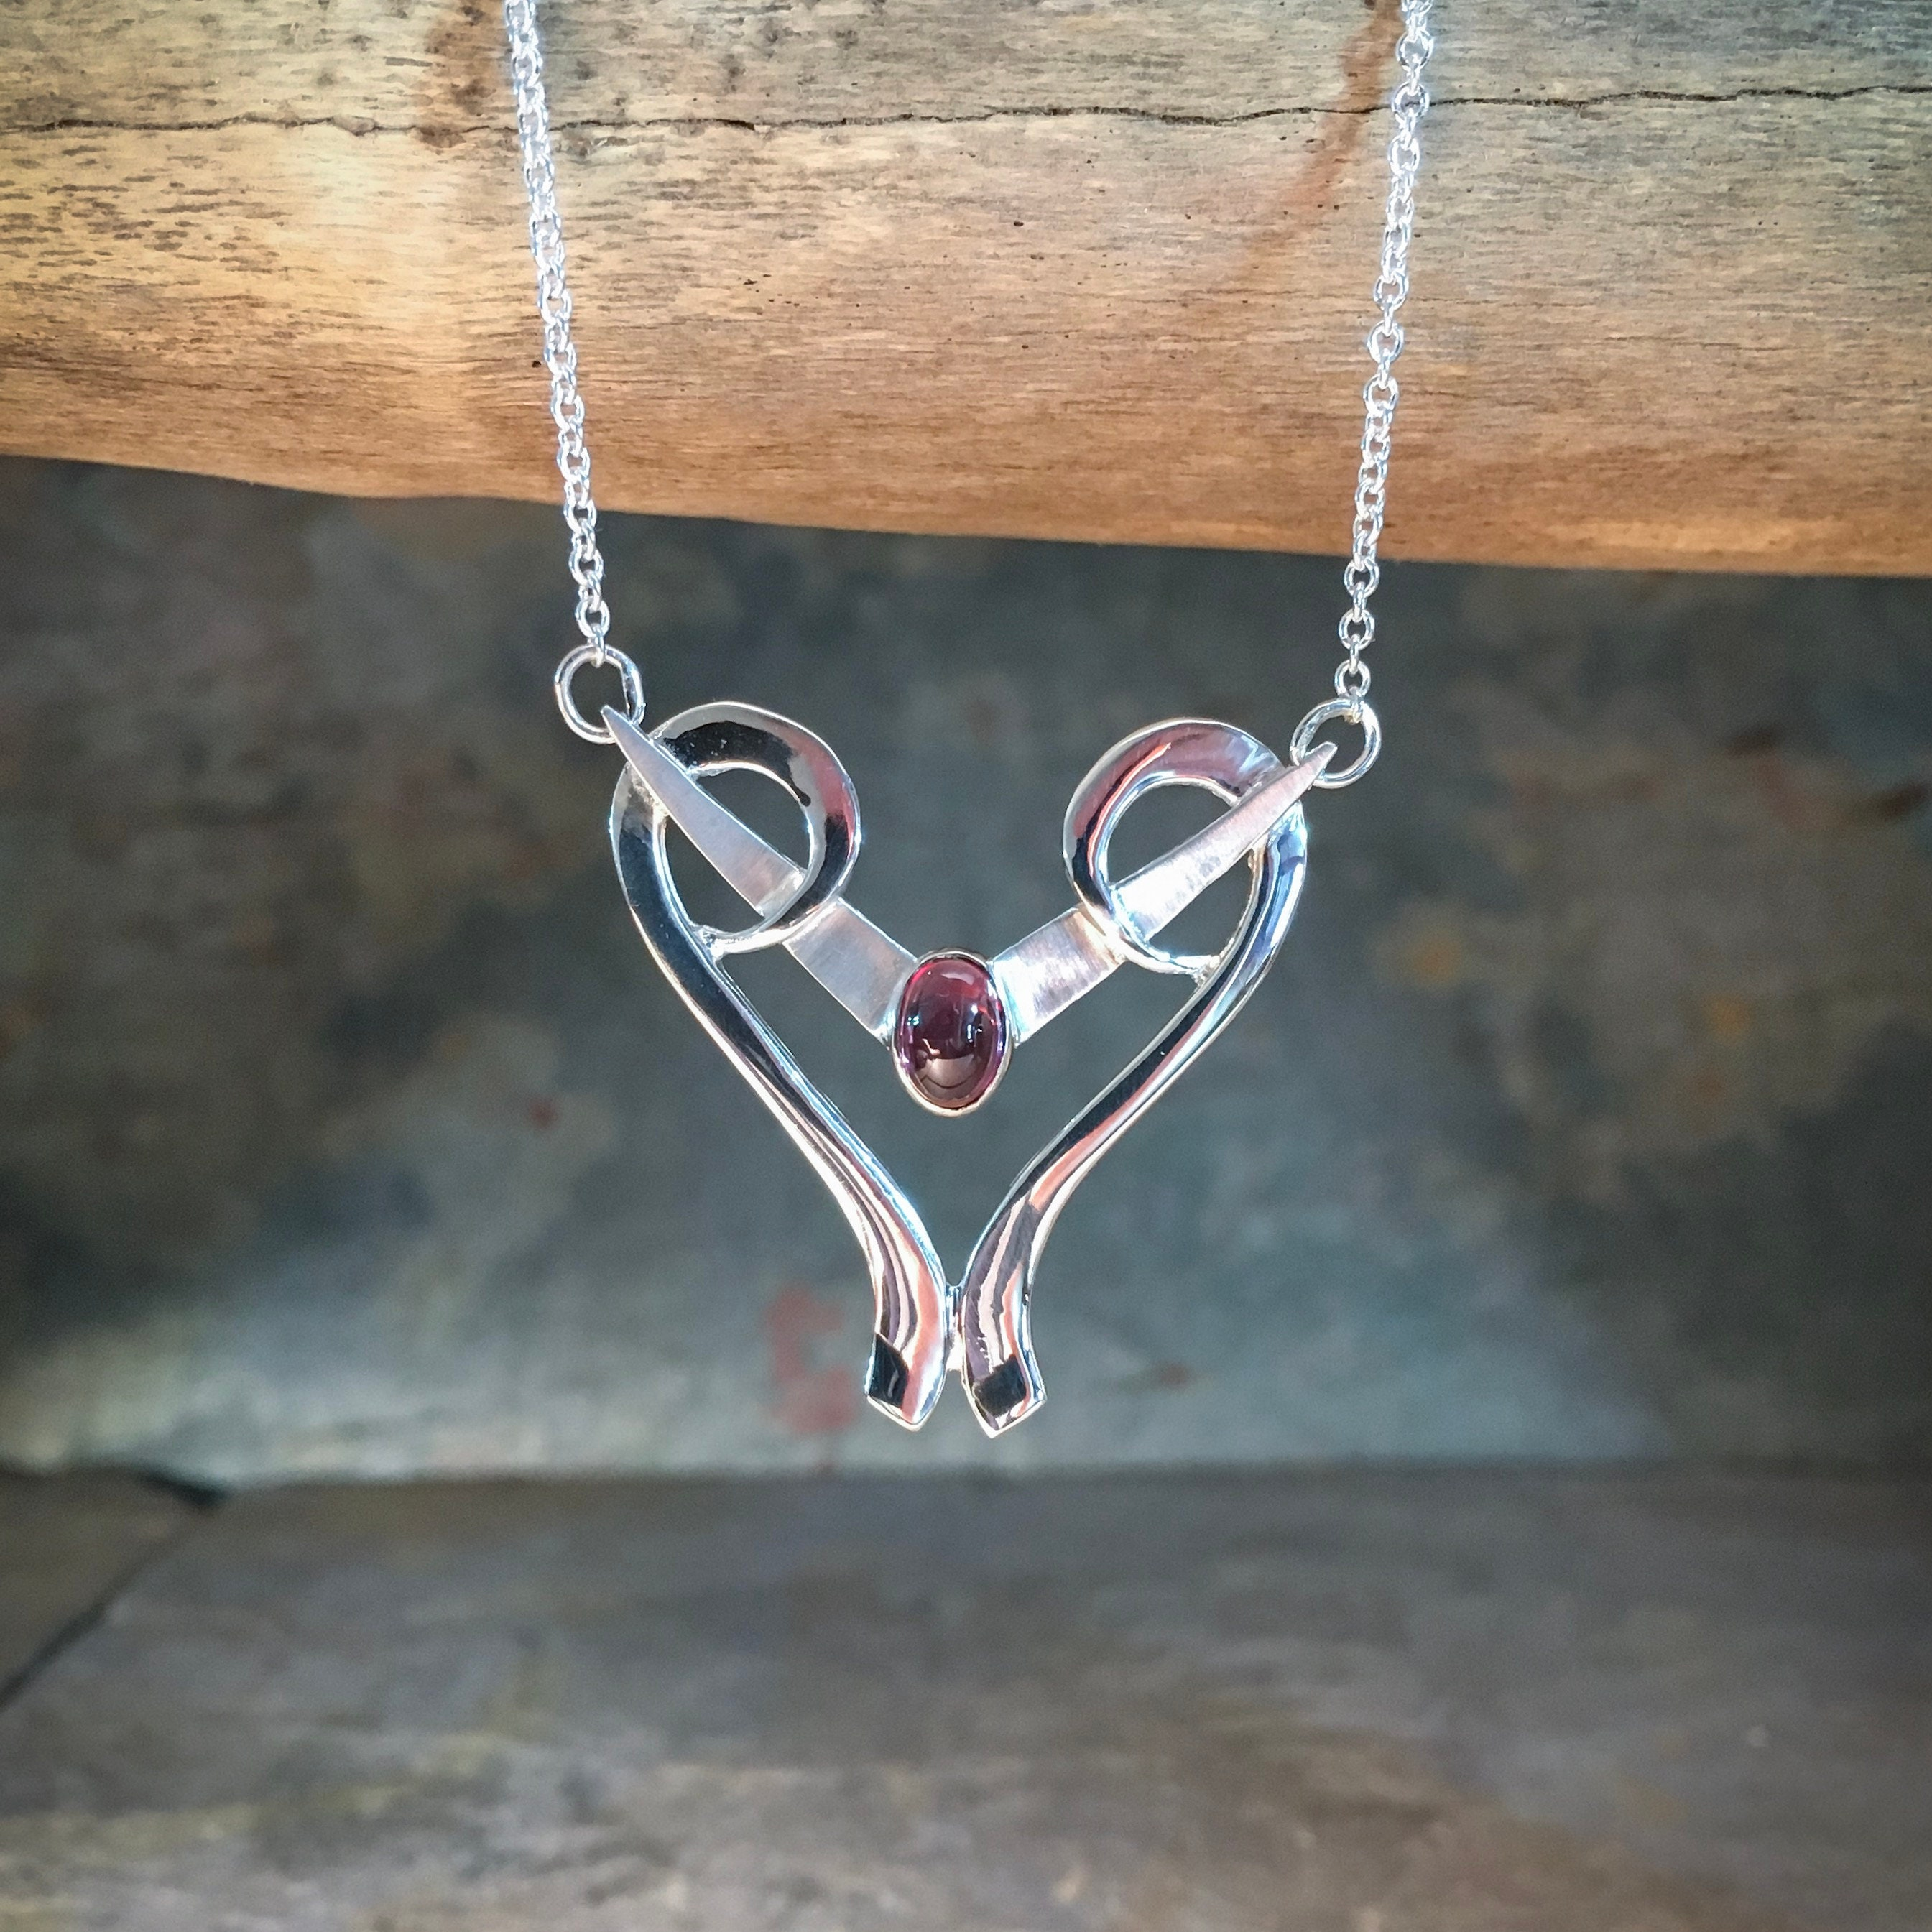 Blade Chevron Heart Necklace with Genuine Gemstone, Sterling Silver - A fine jewelry anniversary gift, gift for wife or gift for girlfriend.